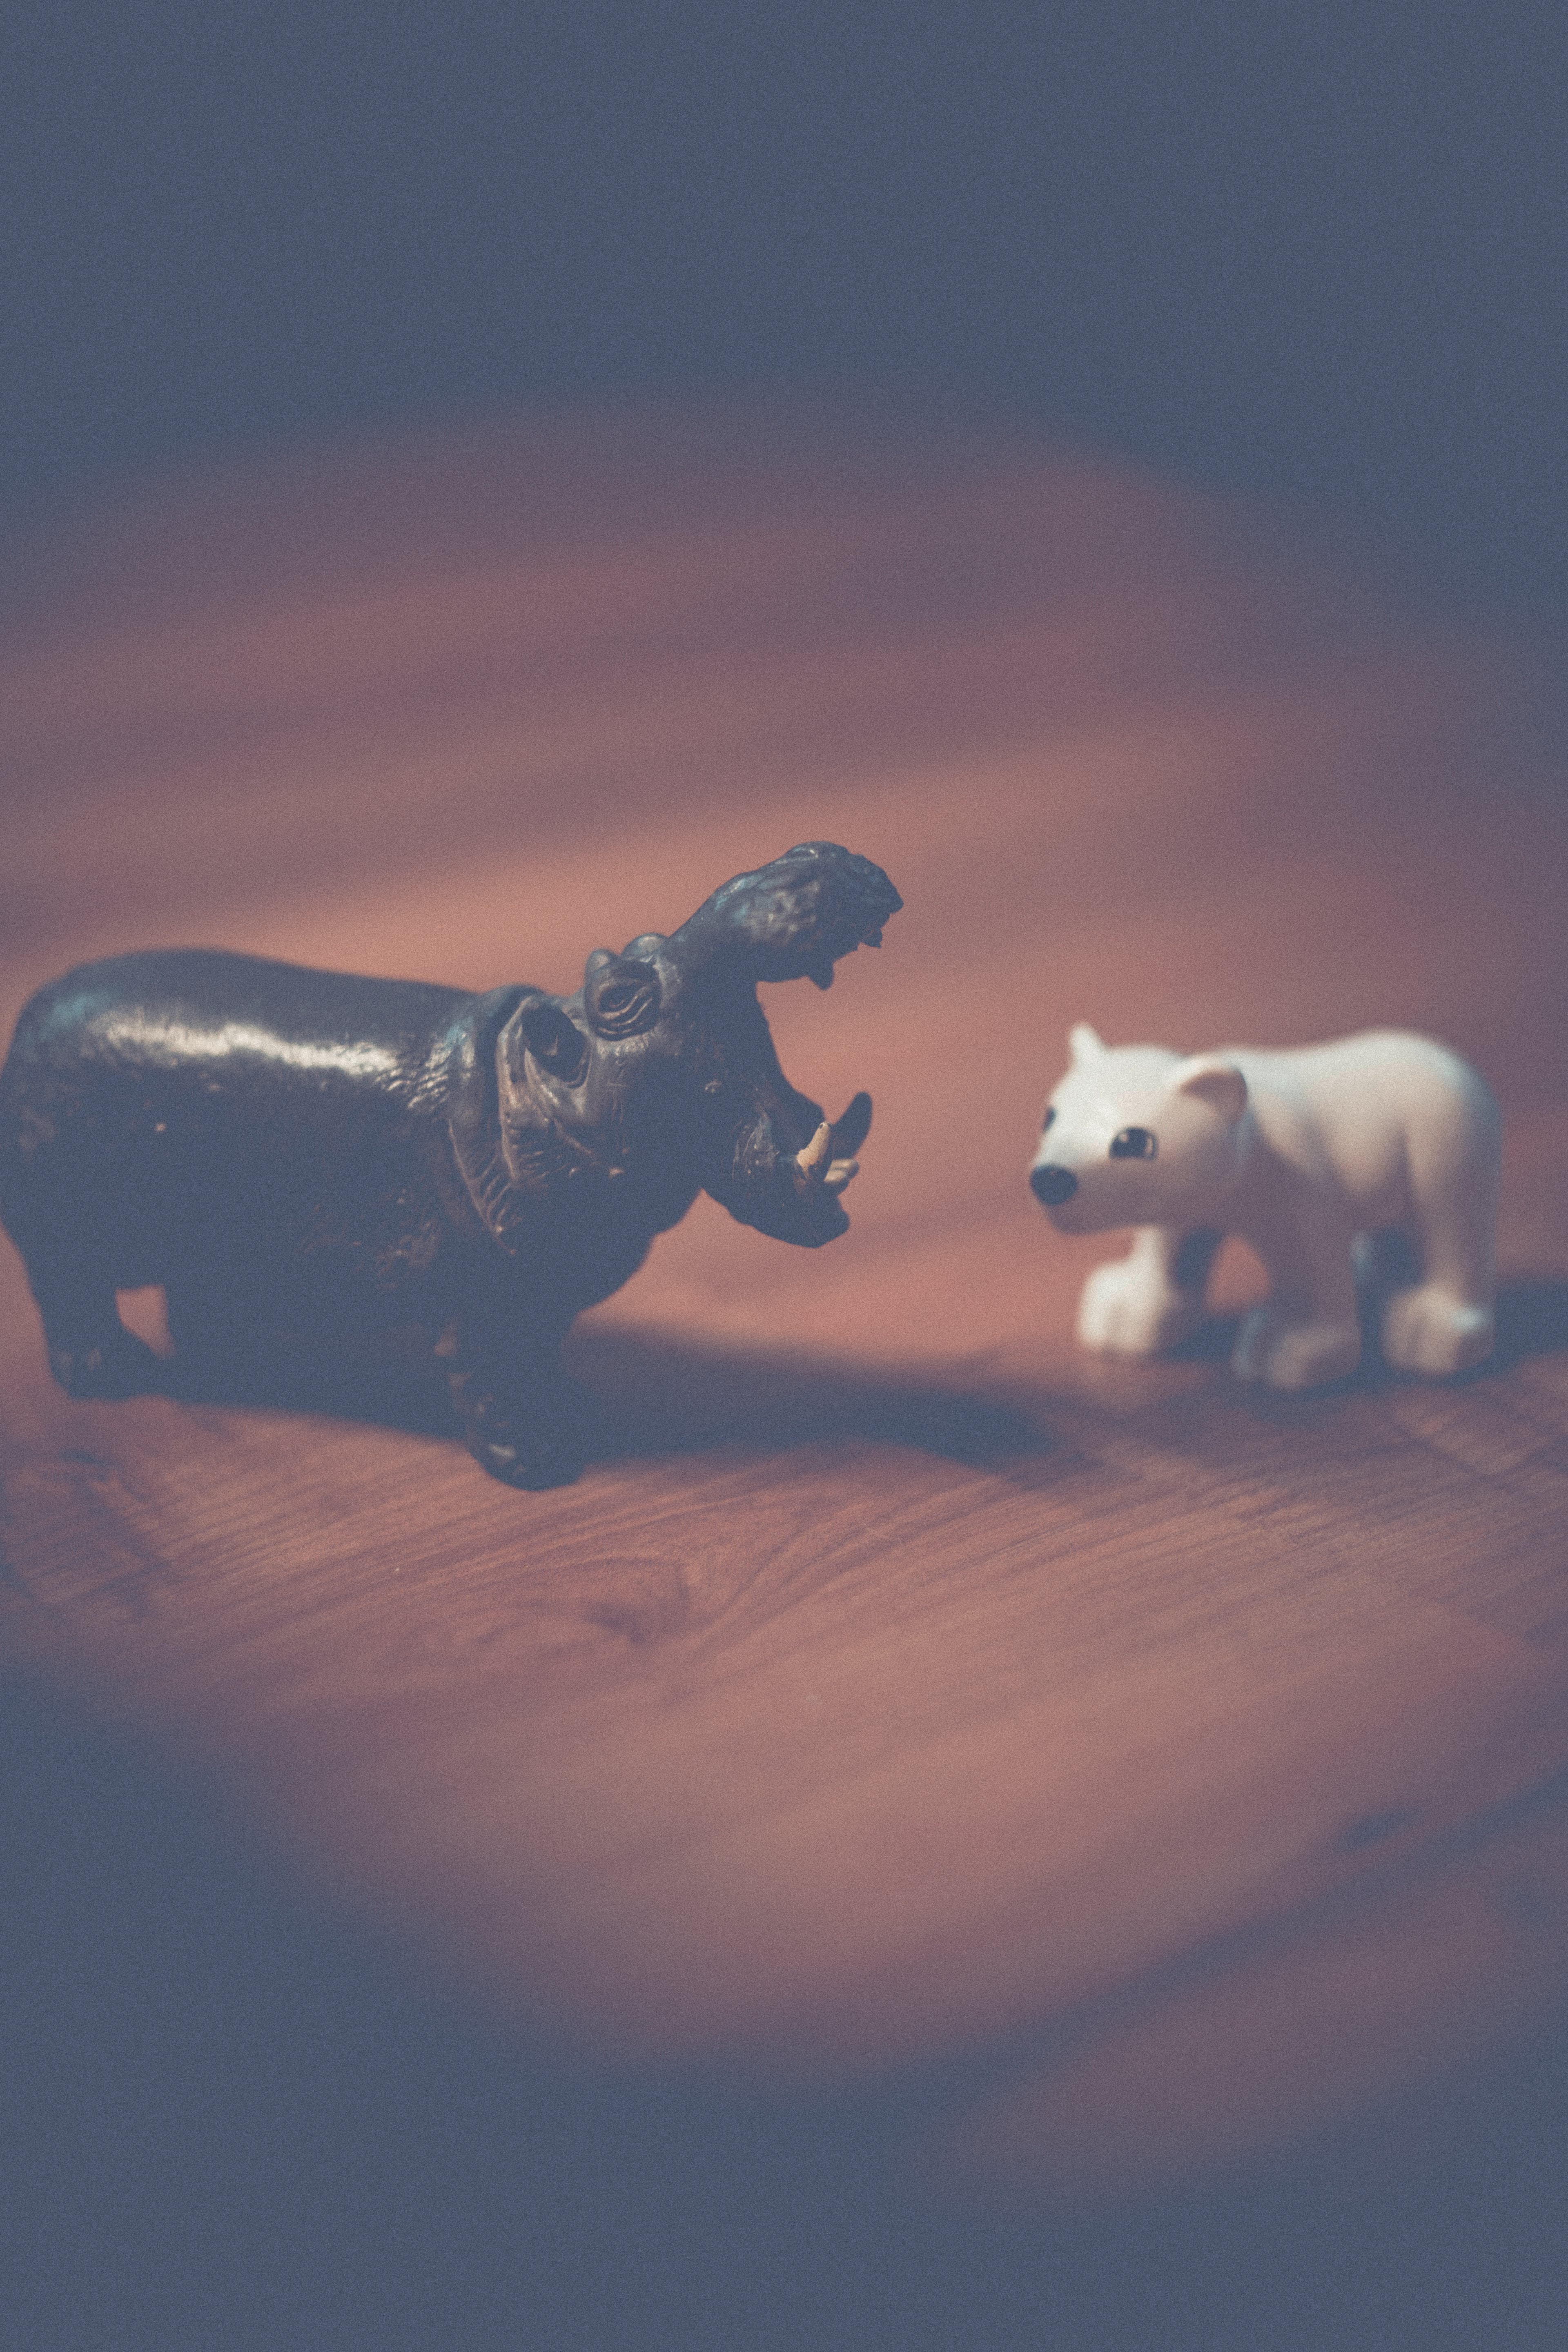 Hippo and Polar Bear Figurines